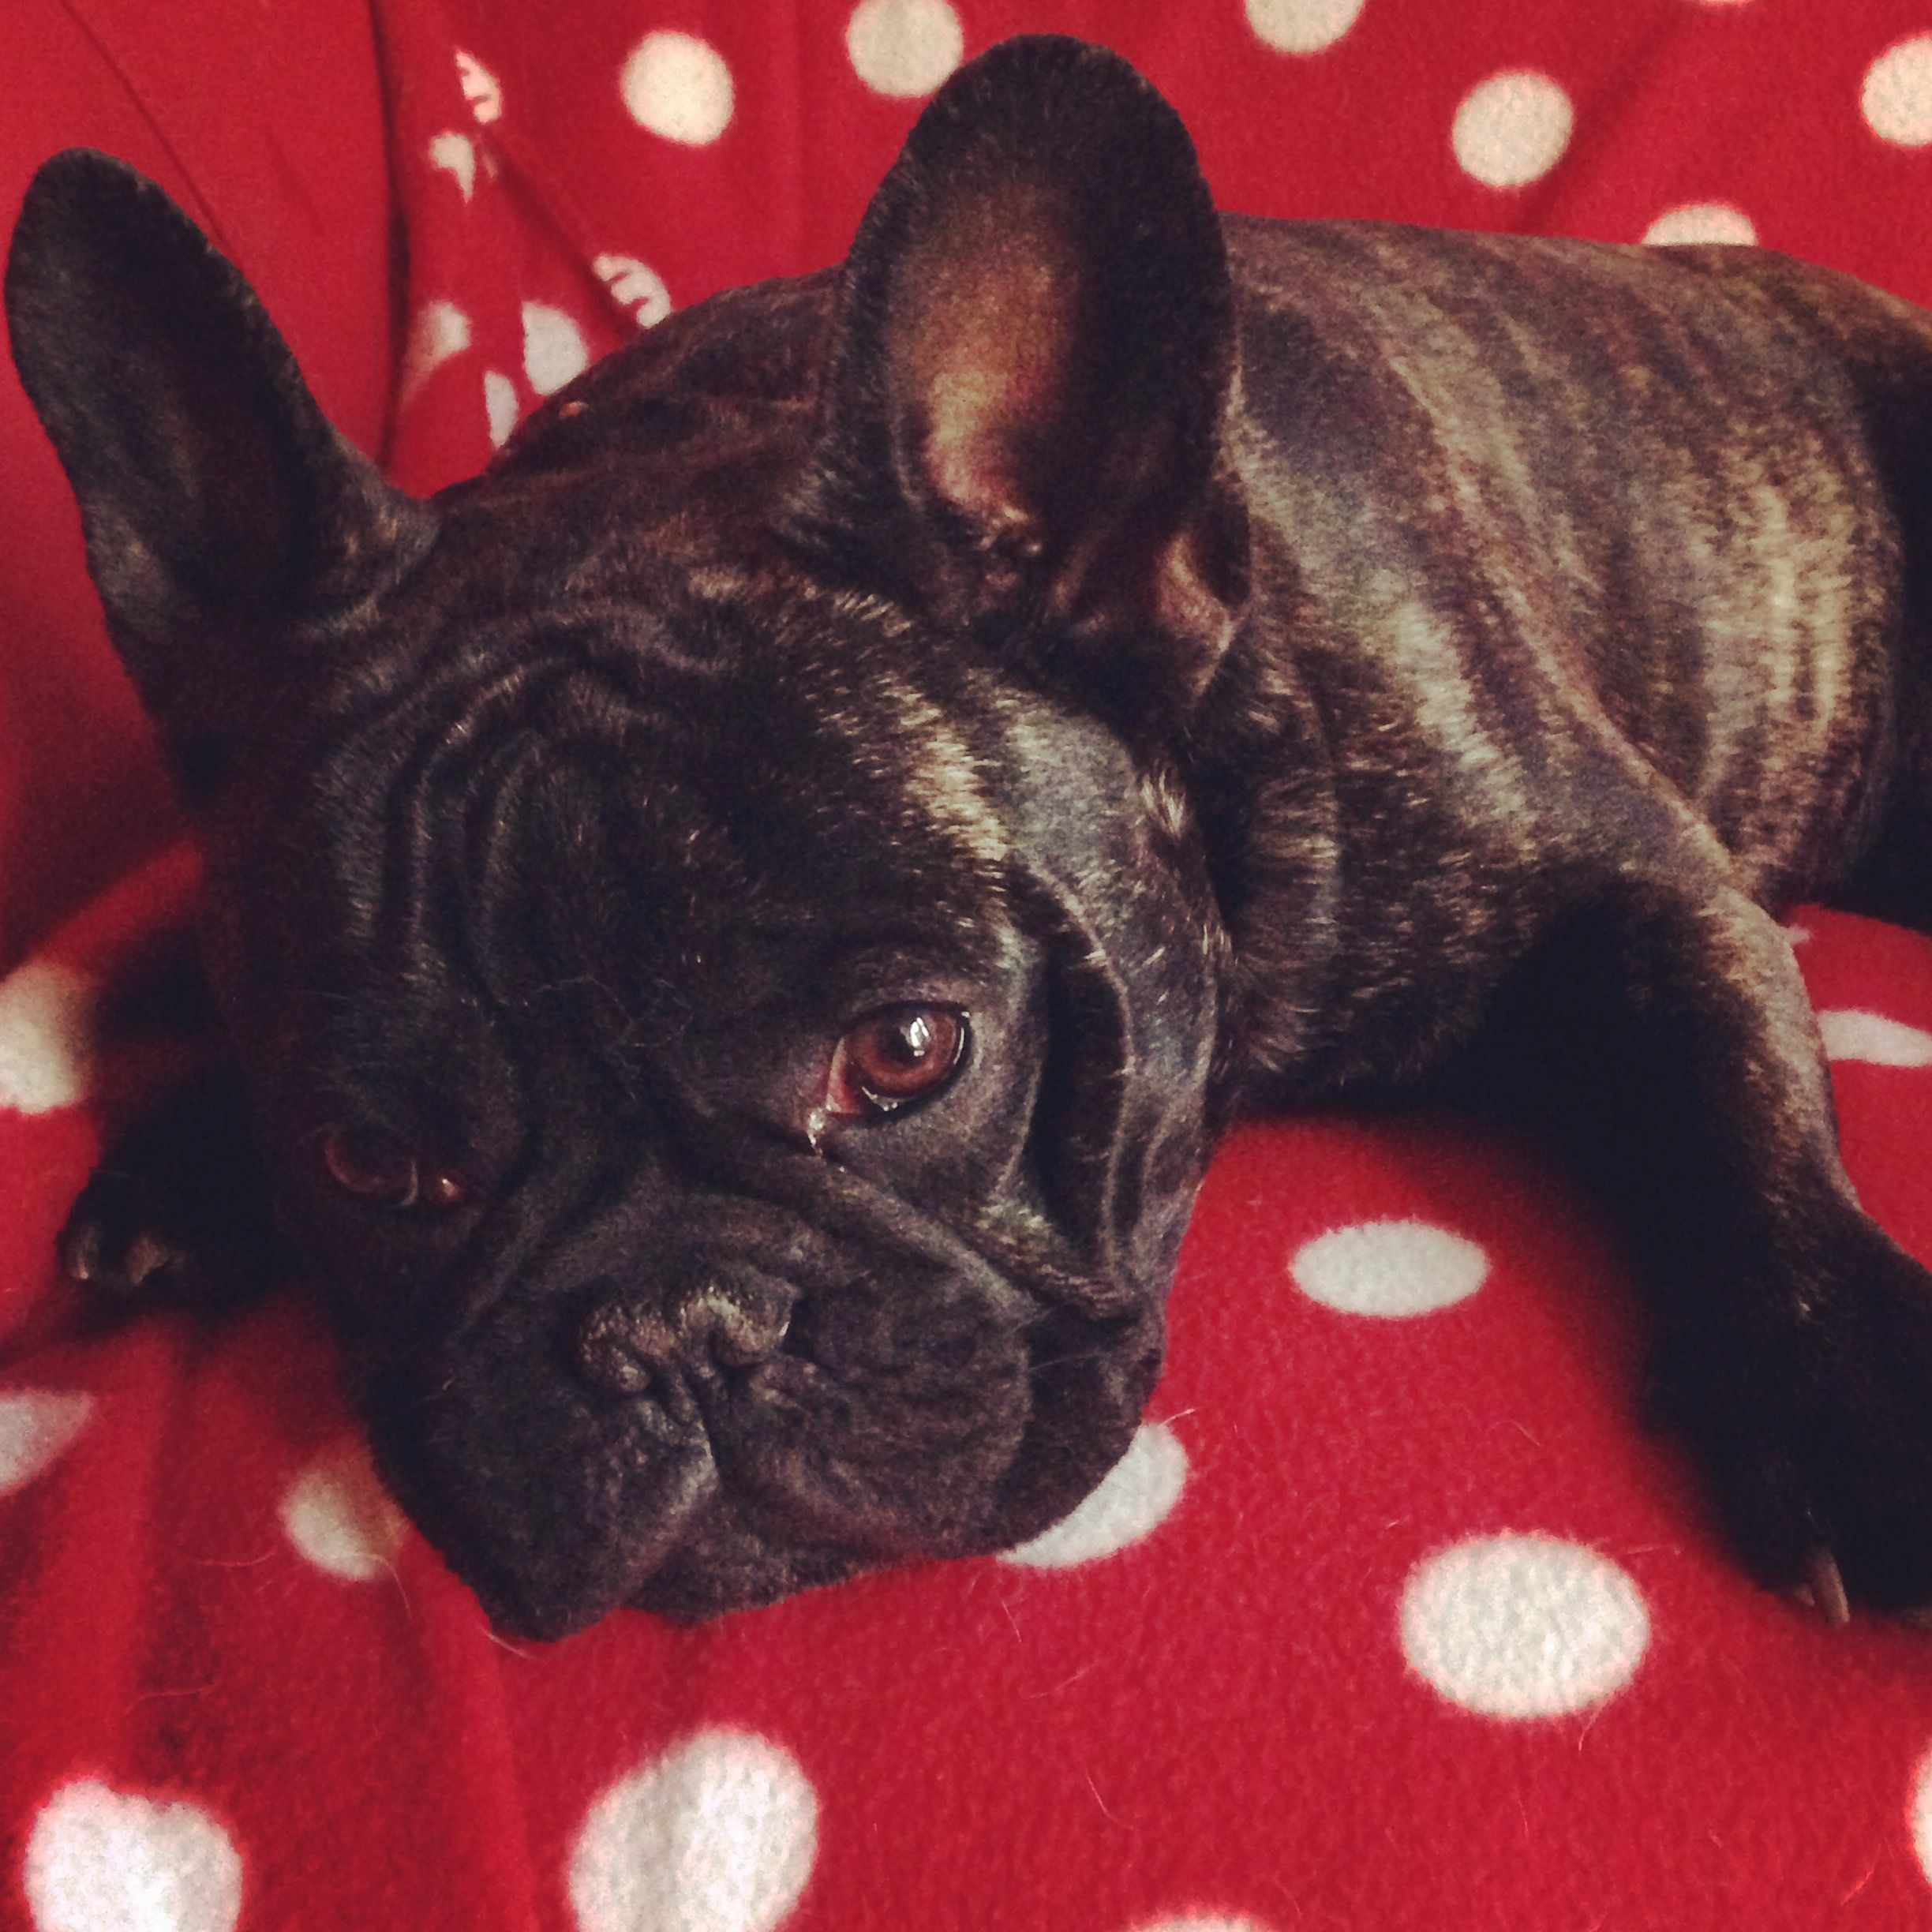 Pin by Chandra Knoke on Frenchies & Co. French bulldog